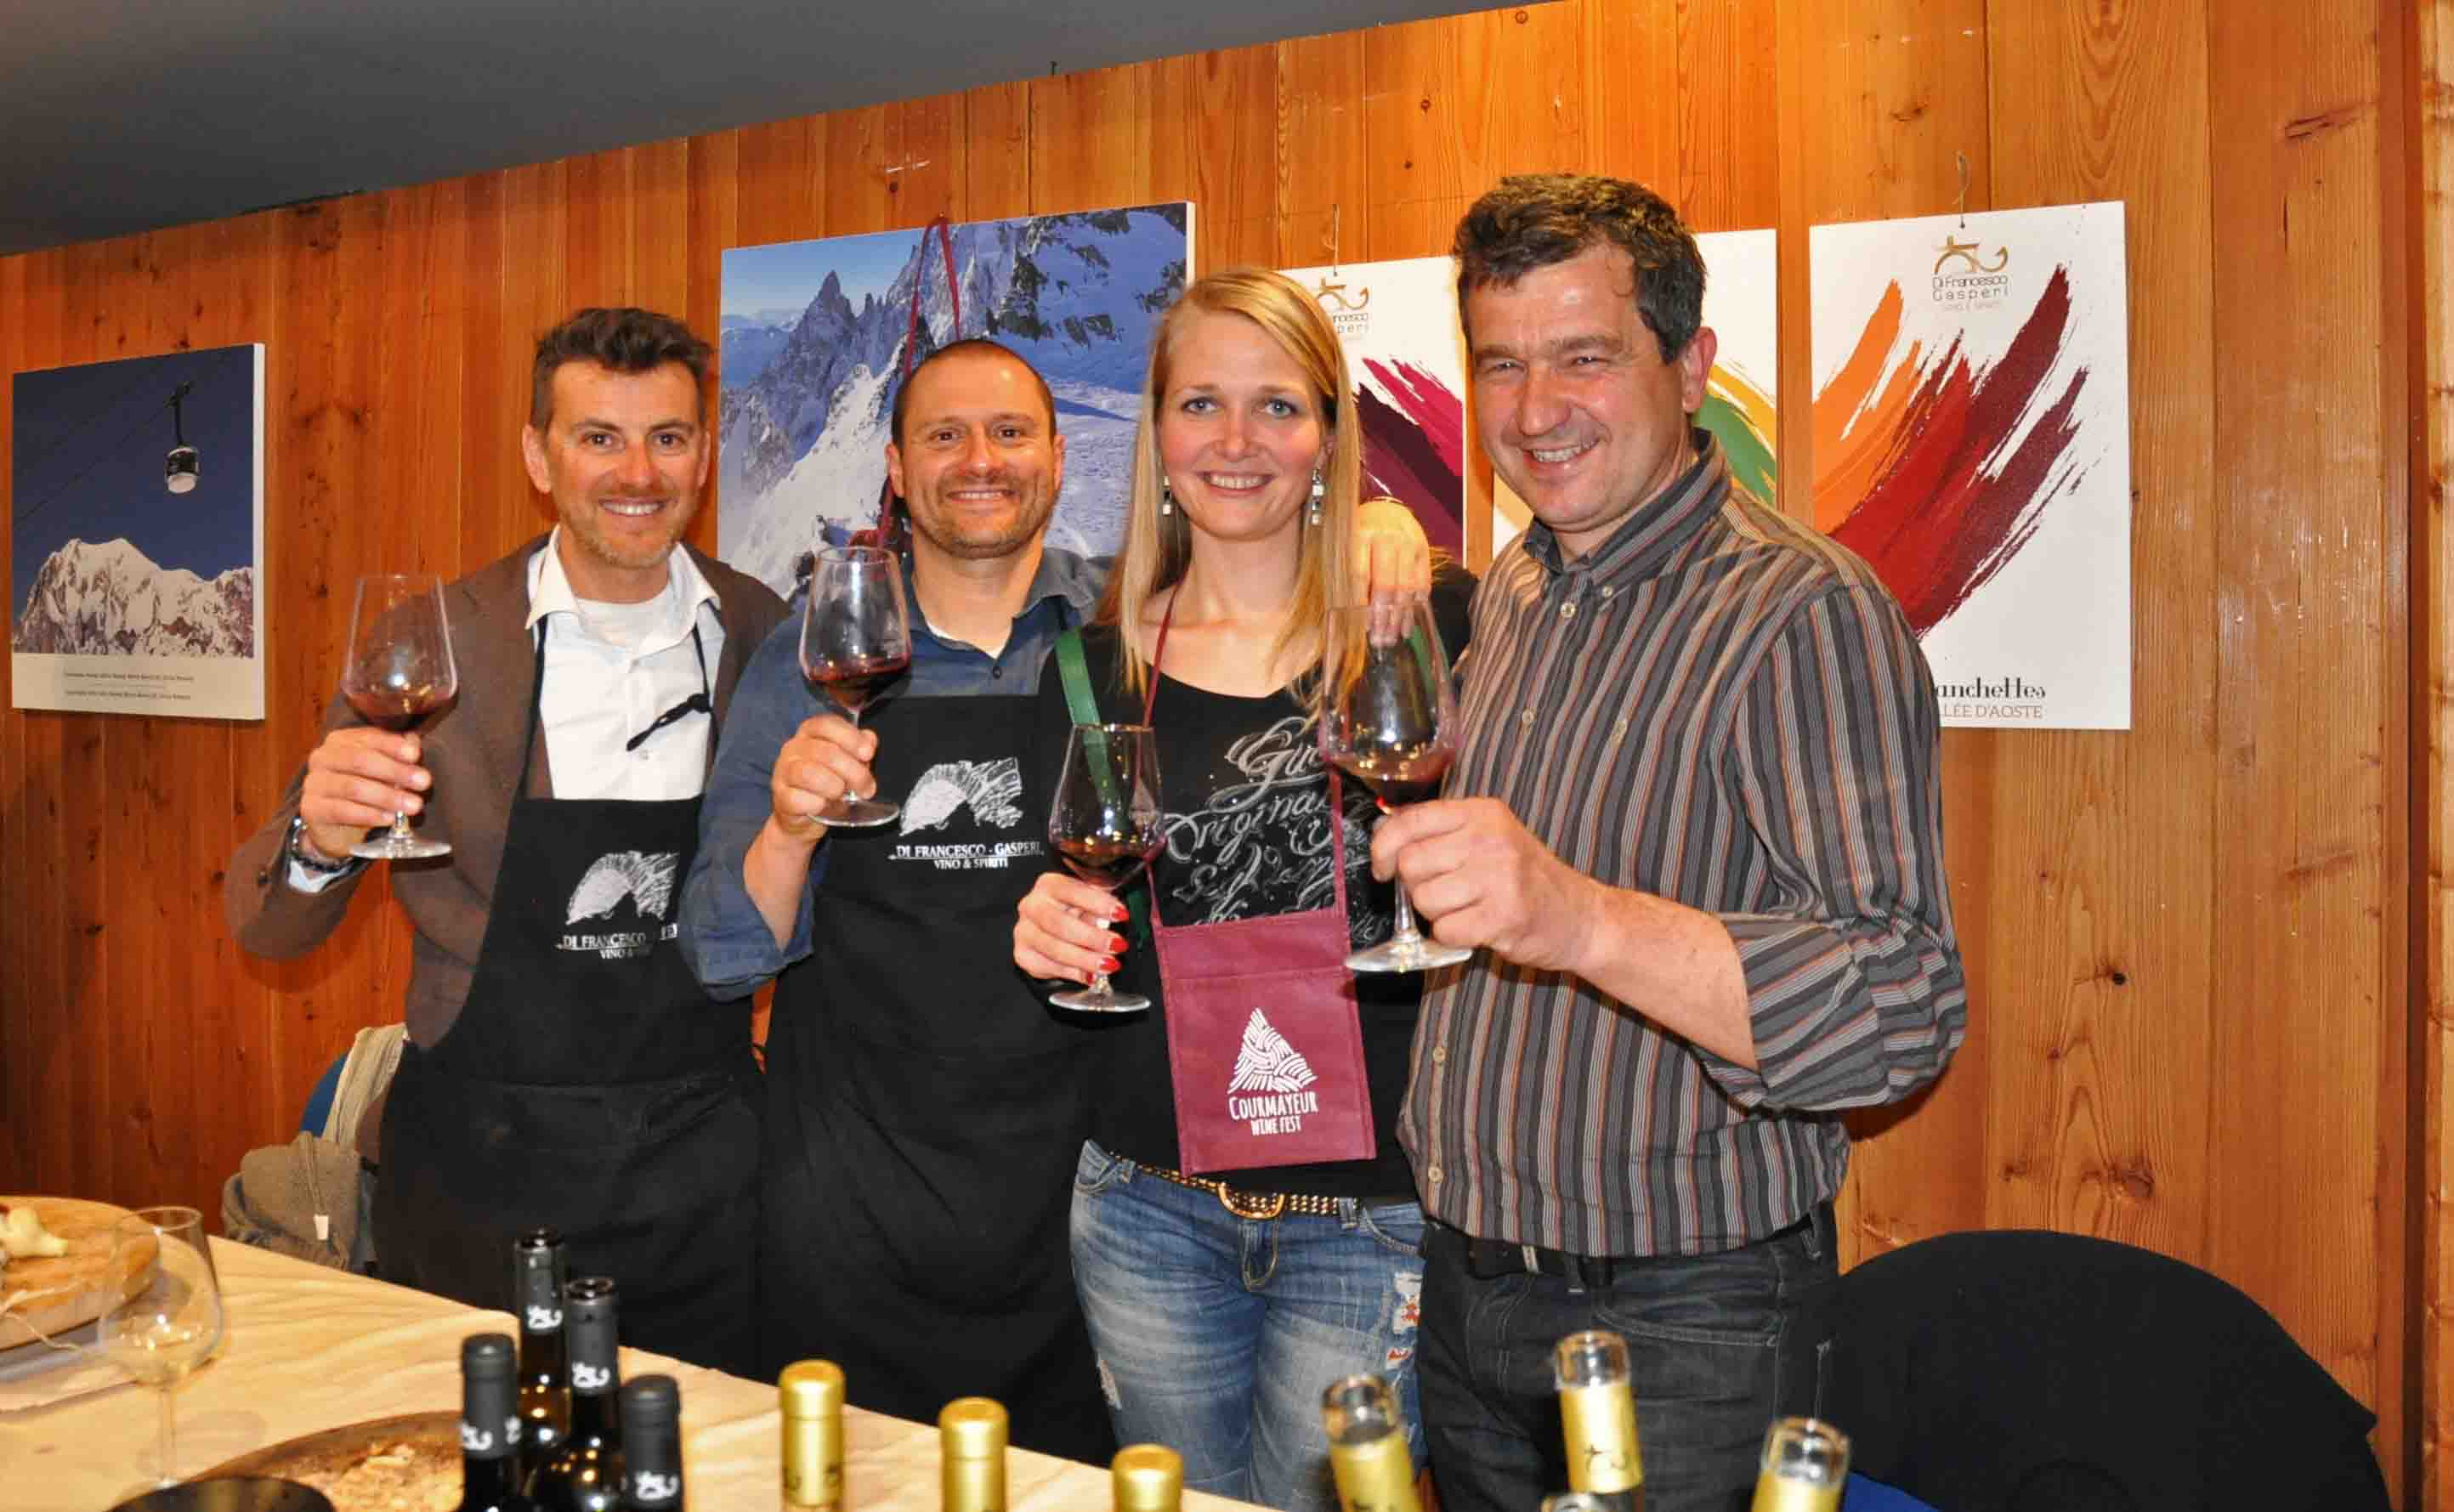 wine and food tasting in courmayeur mont blanc